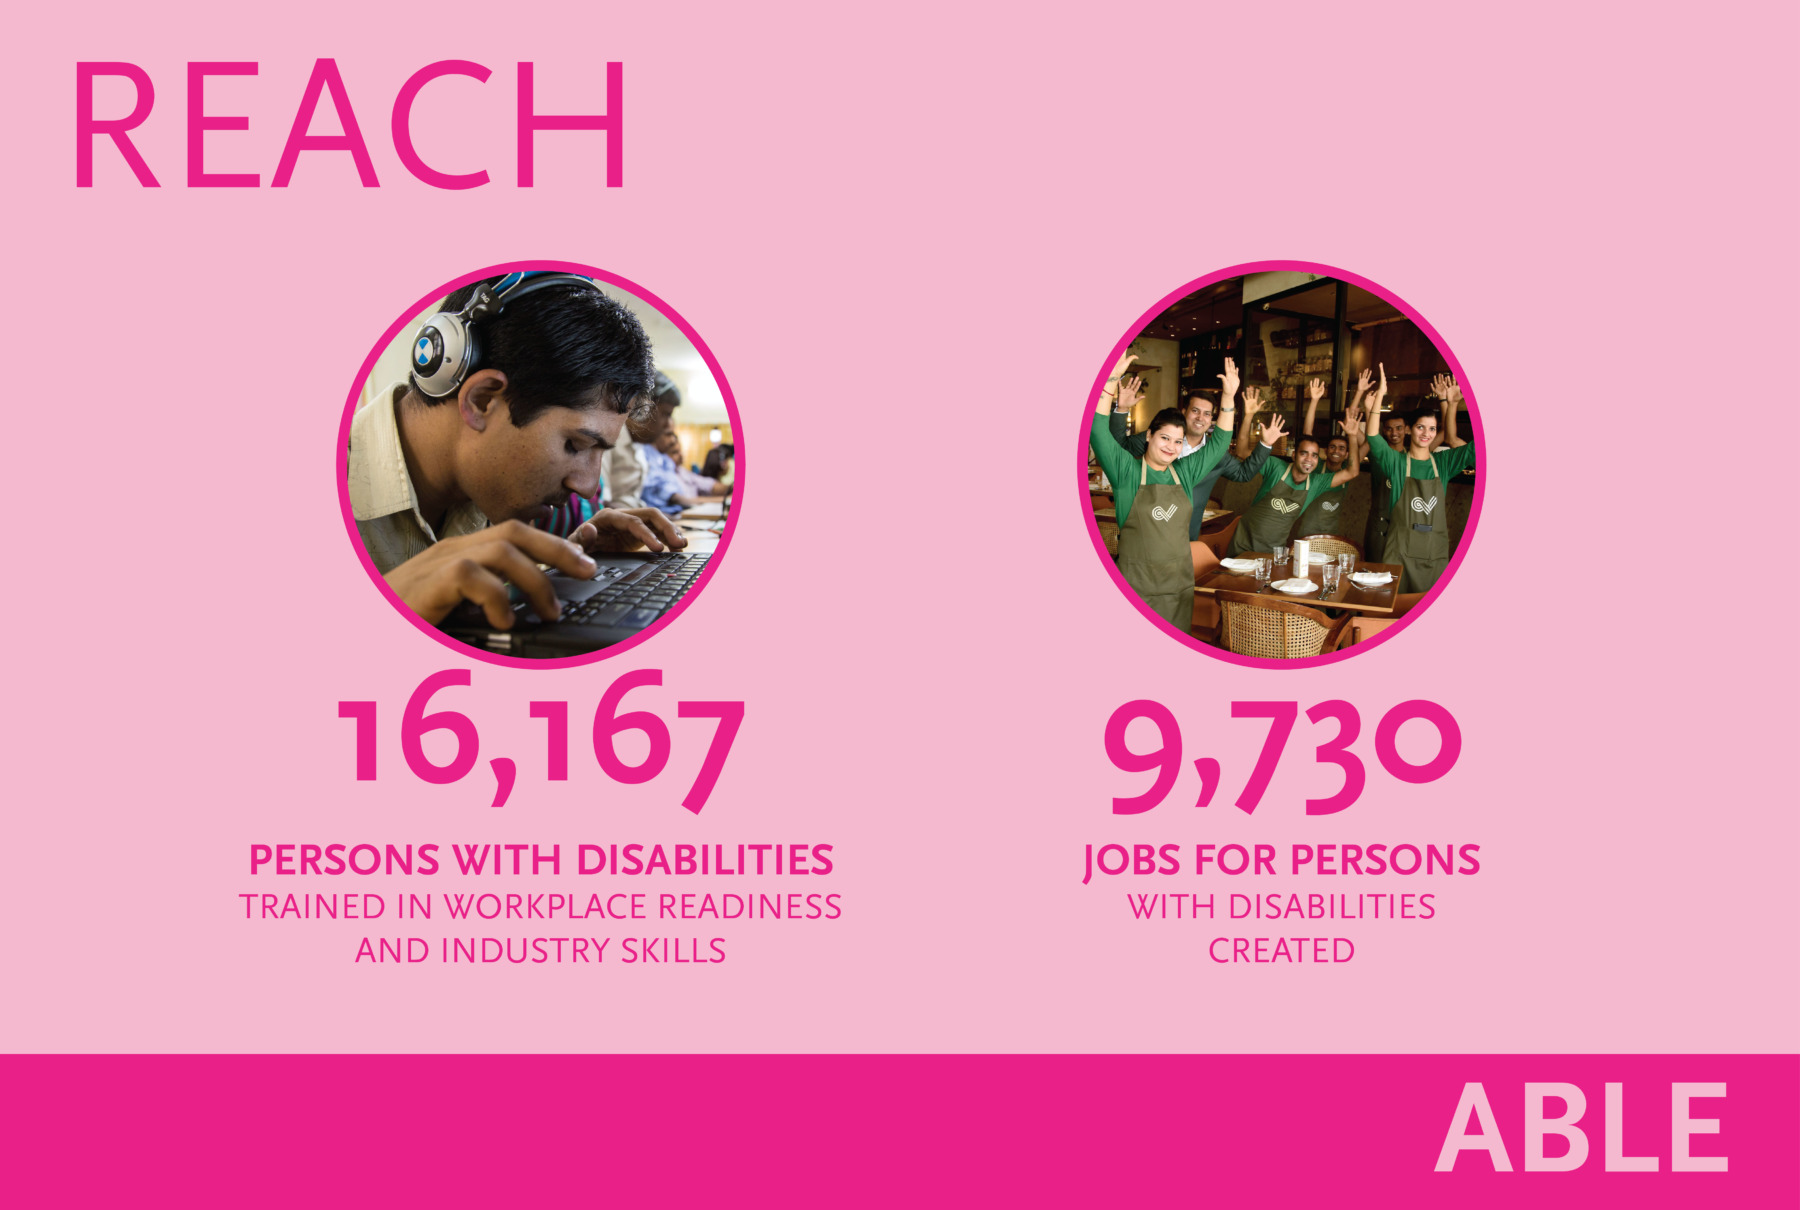 ABLE Reach: 16,167 PWDs Trained. 9,730 PWDs Placed in Jobs.